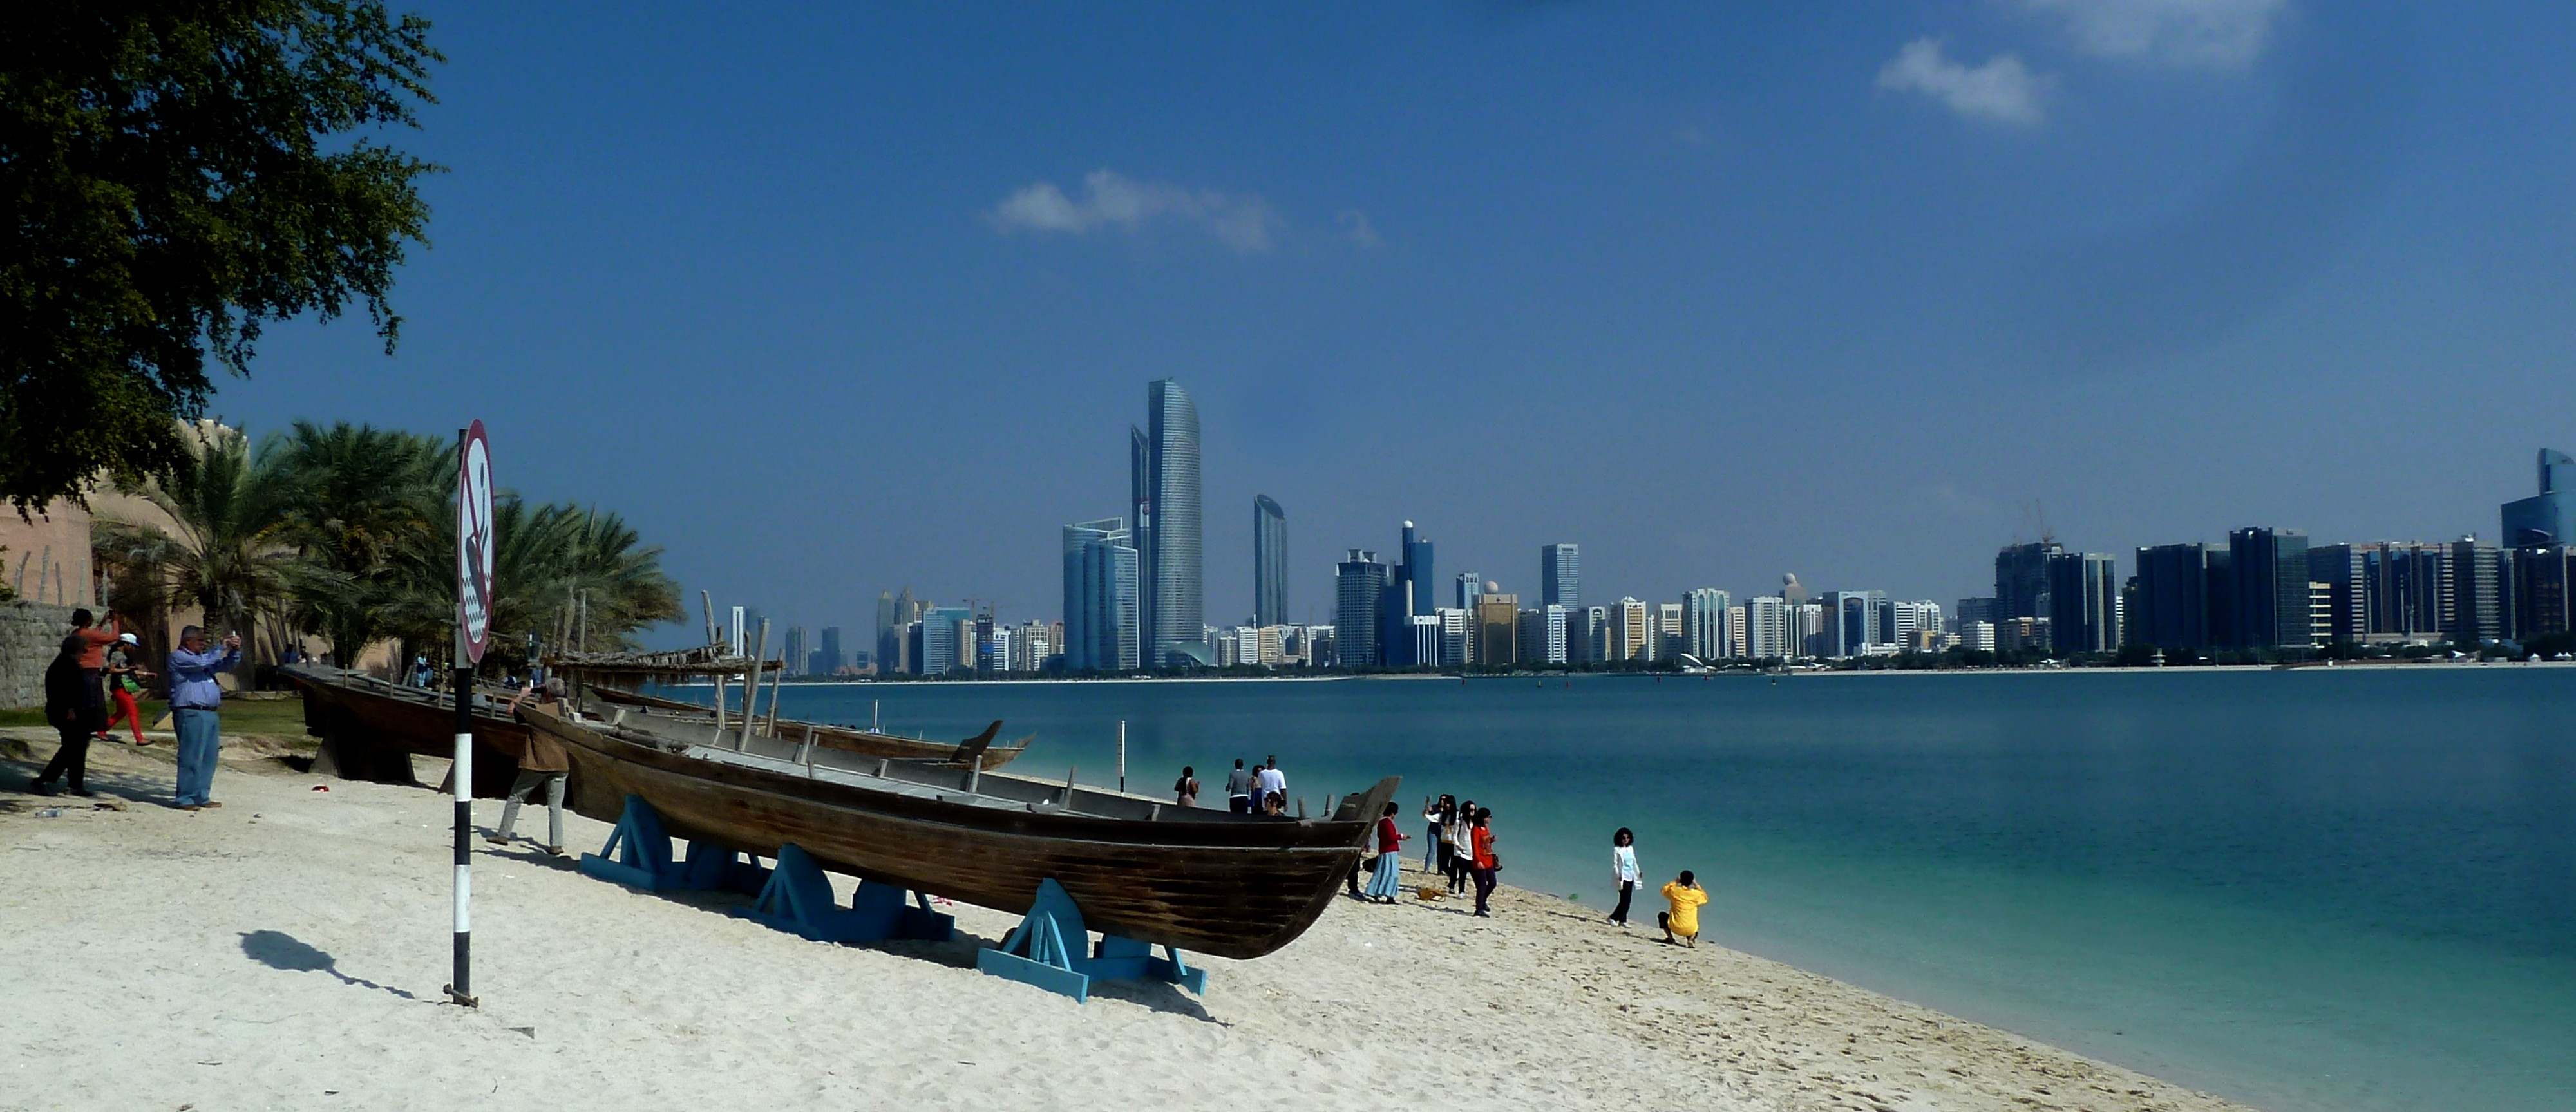 Image result for abu dhabi corniche beach